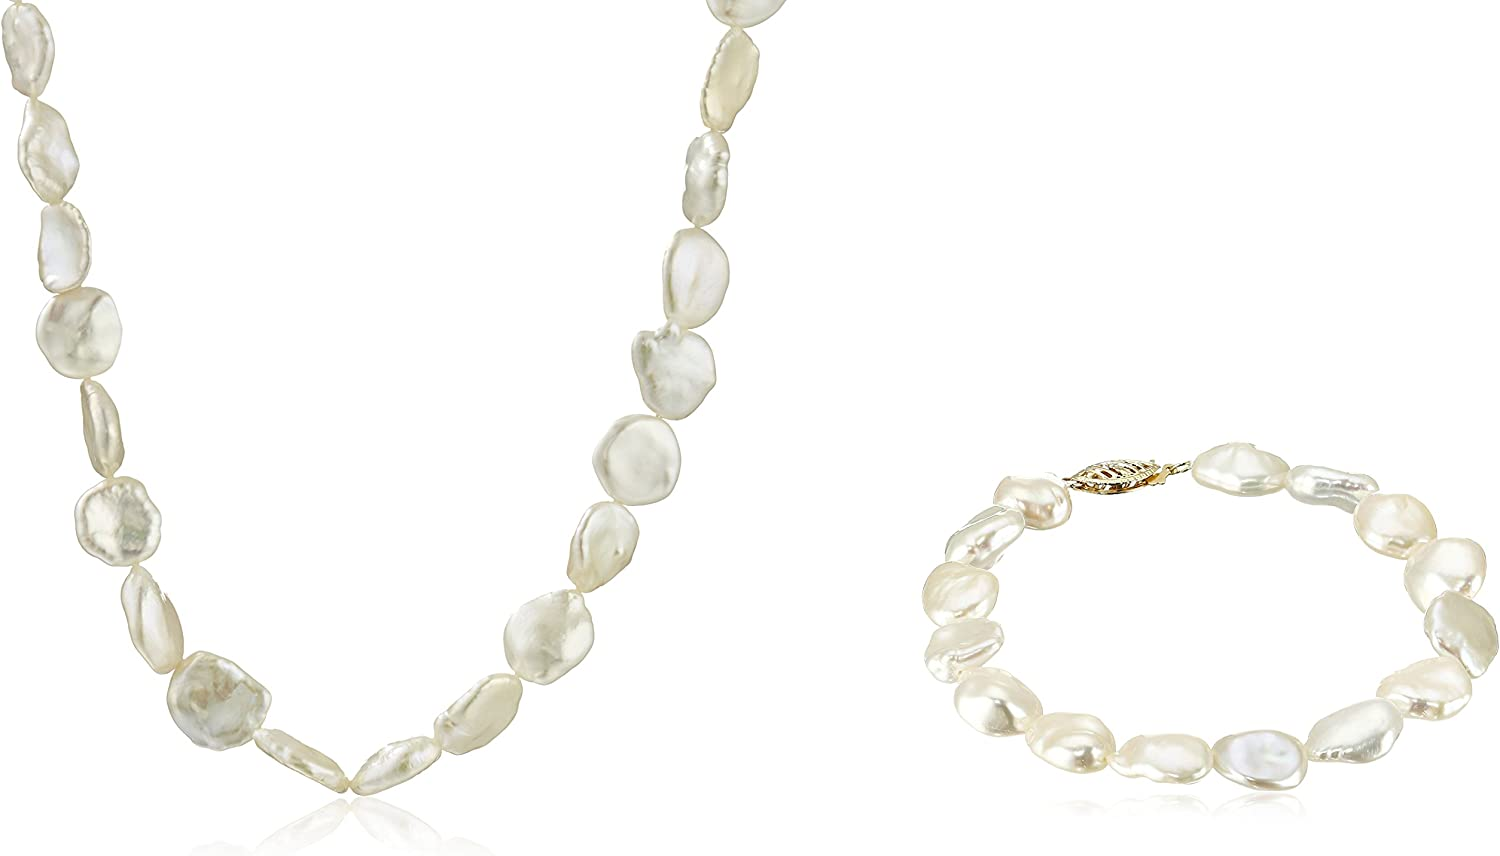 14k Yellow Gold 8x10mm White Keshi Cultured Freshwater Pearl Choker Necklace and Bracelet Jewelry Set